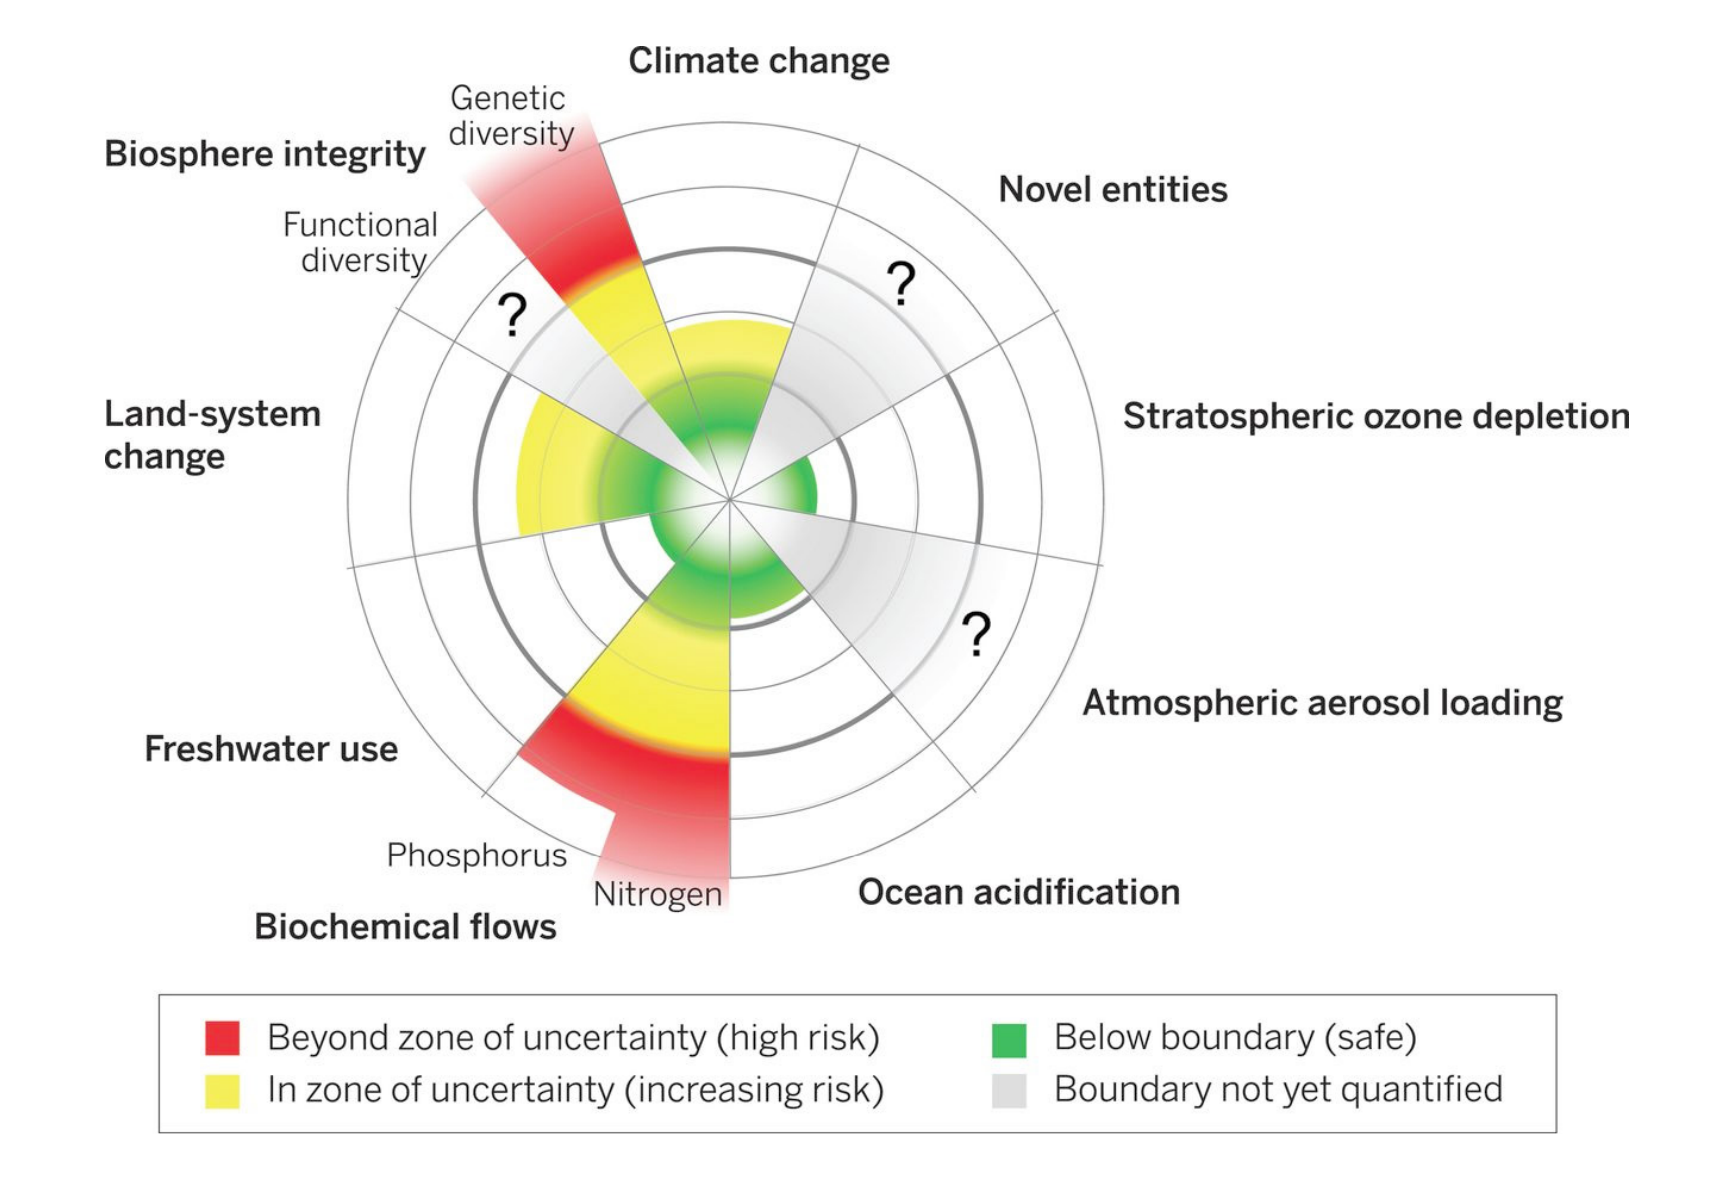 Figure 18: Planetary boundaries: estimated tipping points for changes in earth system functioning in relation to current human influence.